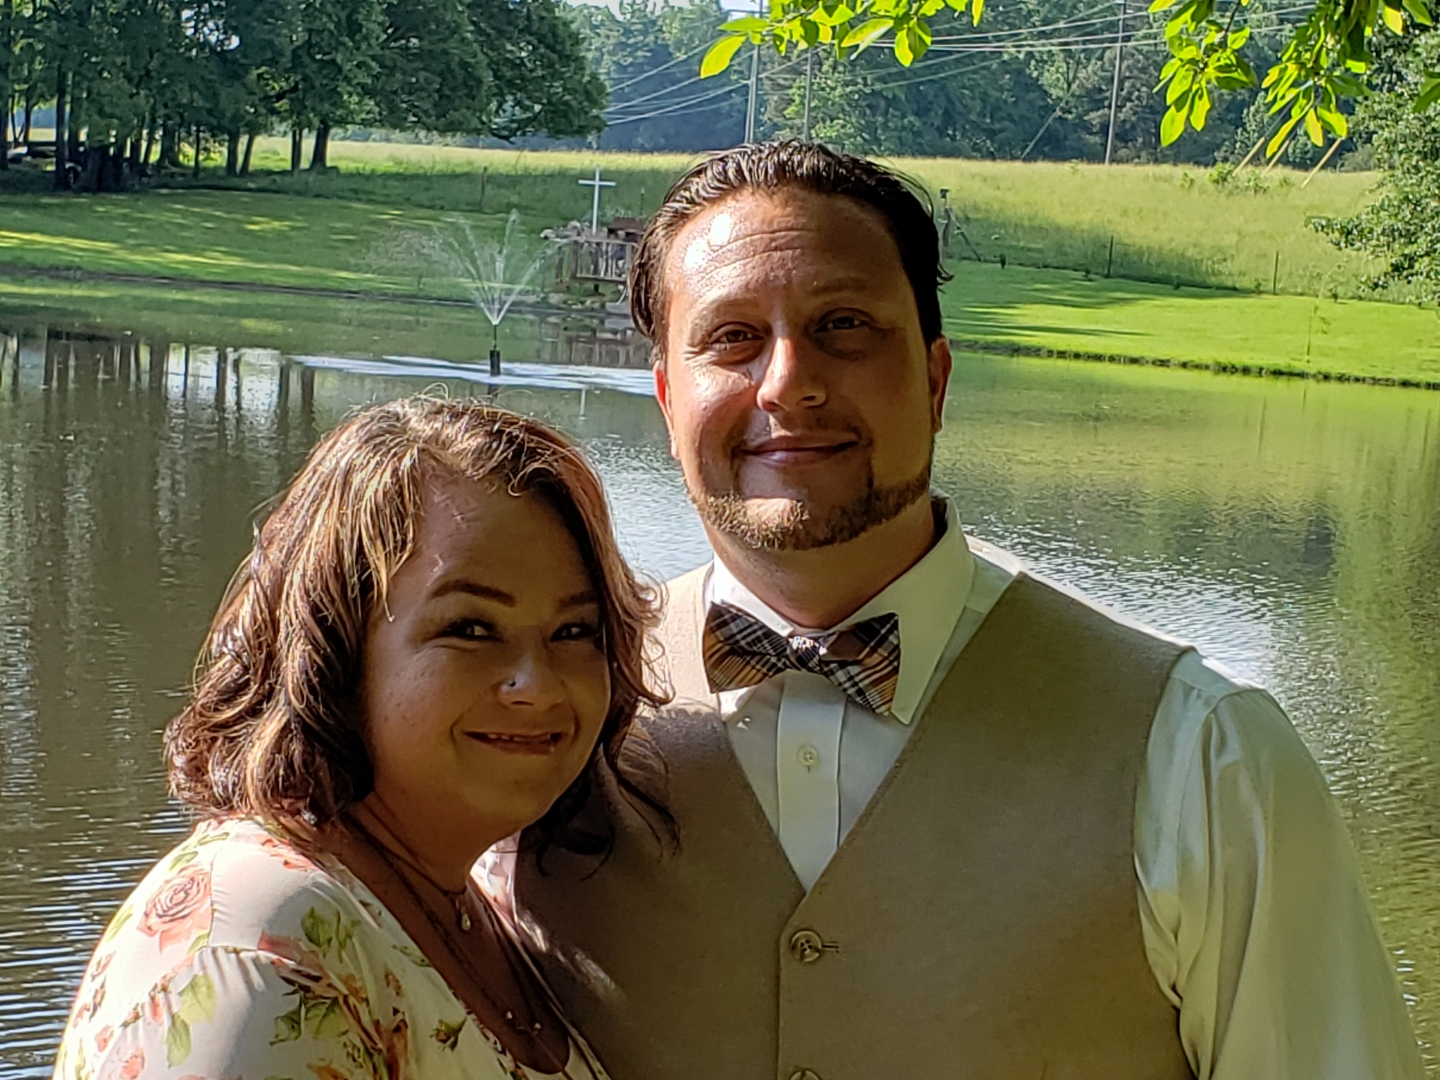 Senior Advisers: Matt & Judy Pfaltzgraf - Matt and Judy helped plant One Life in 2011. They we're our lead Pastors for over 8 years and still remain on the team. As senior advisers to the team, they help support spiritual health, accountability, and encouragement.